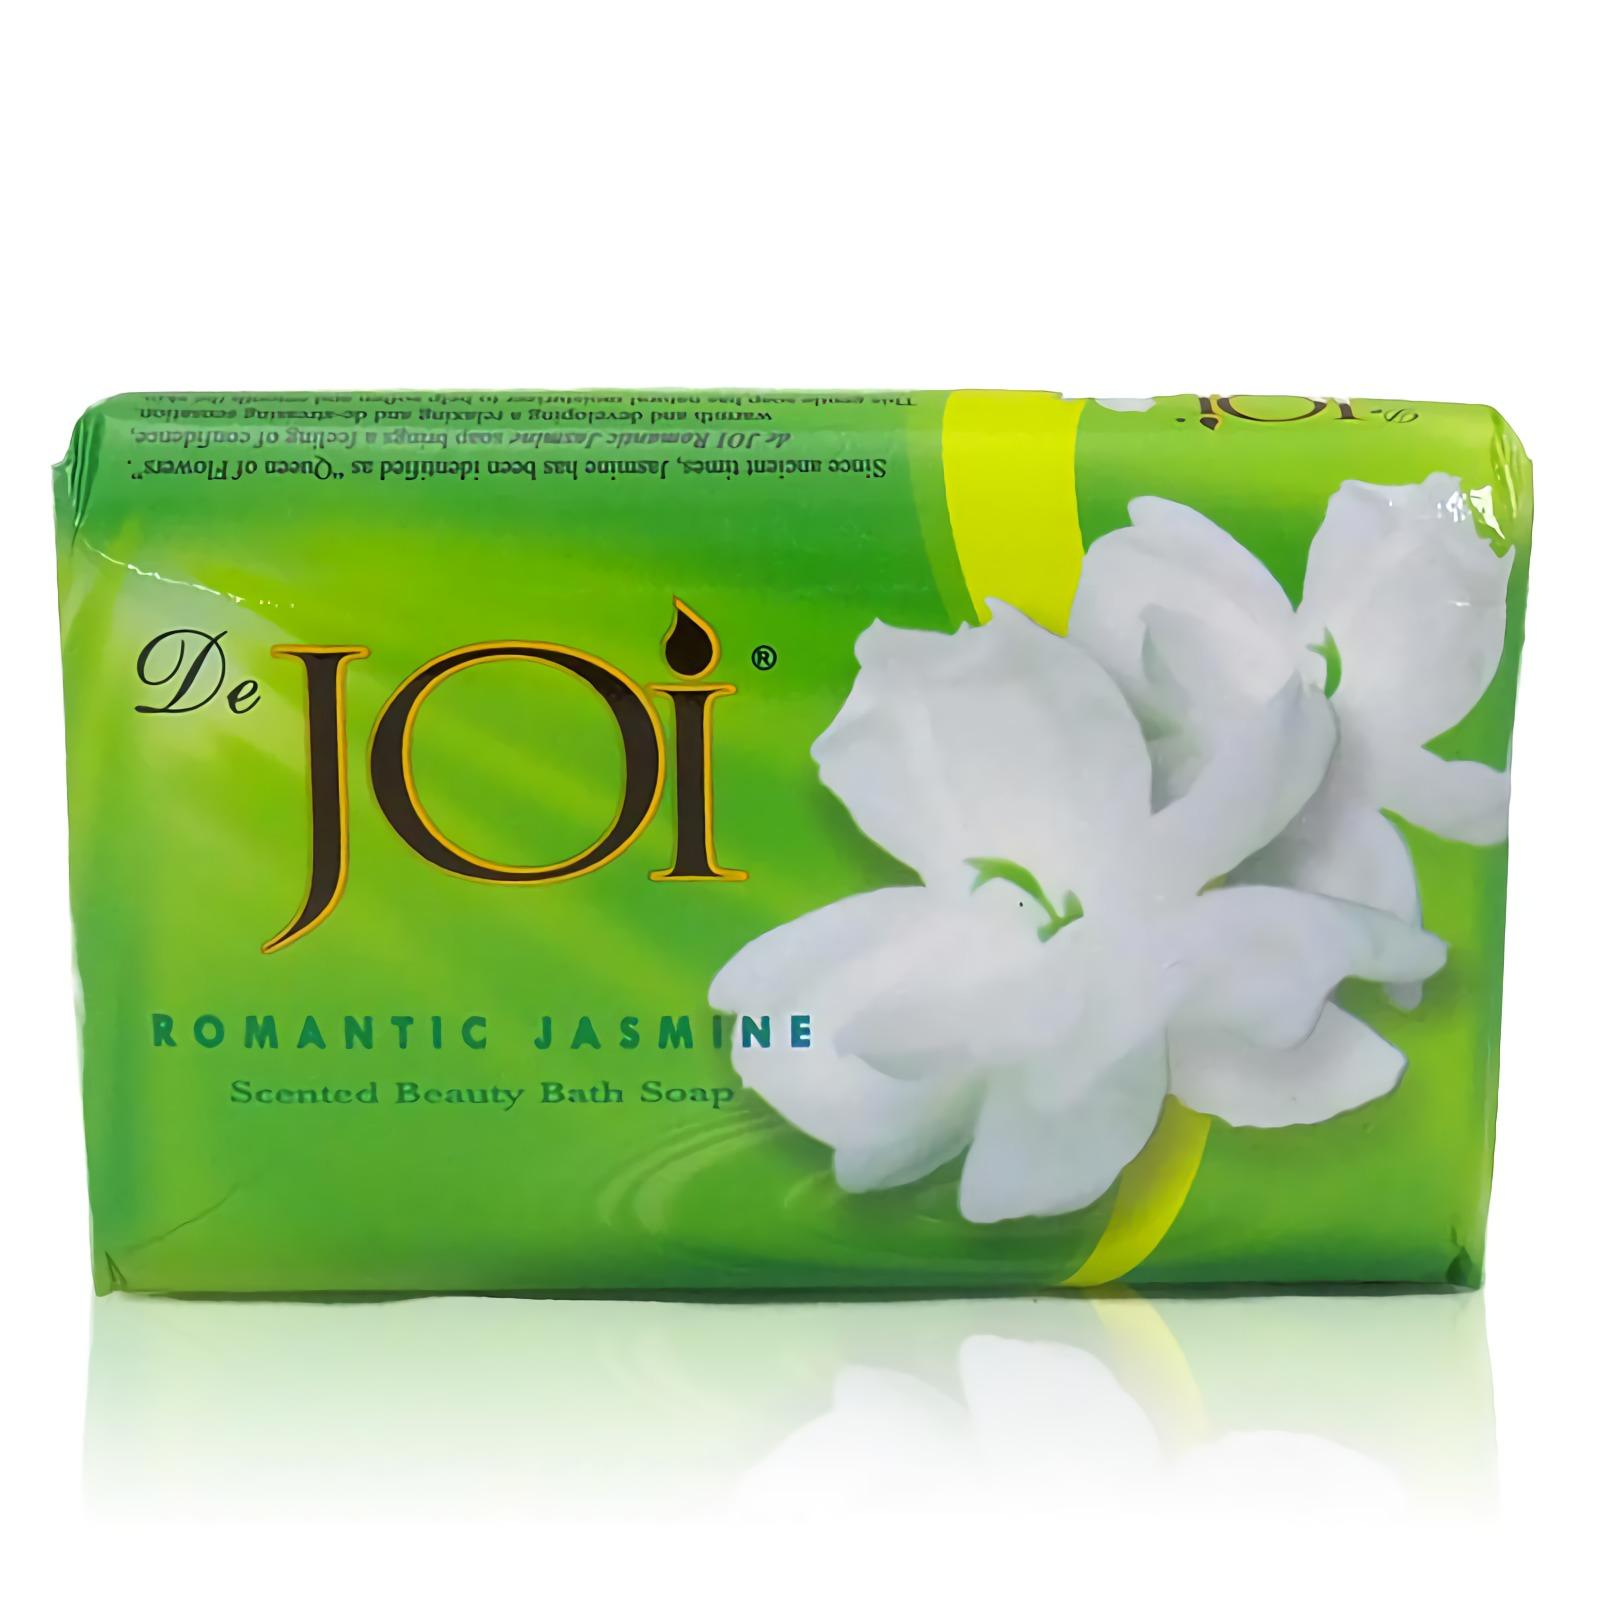 Buy Sell Cheapest Pure Soap Best Quality Product Deals Bpom Body Jelly Sabun De Joi Batang Asi Romantic Jasmine Beauty 80g Batangan Moisturizing Bar Harmony Citra